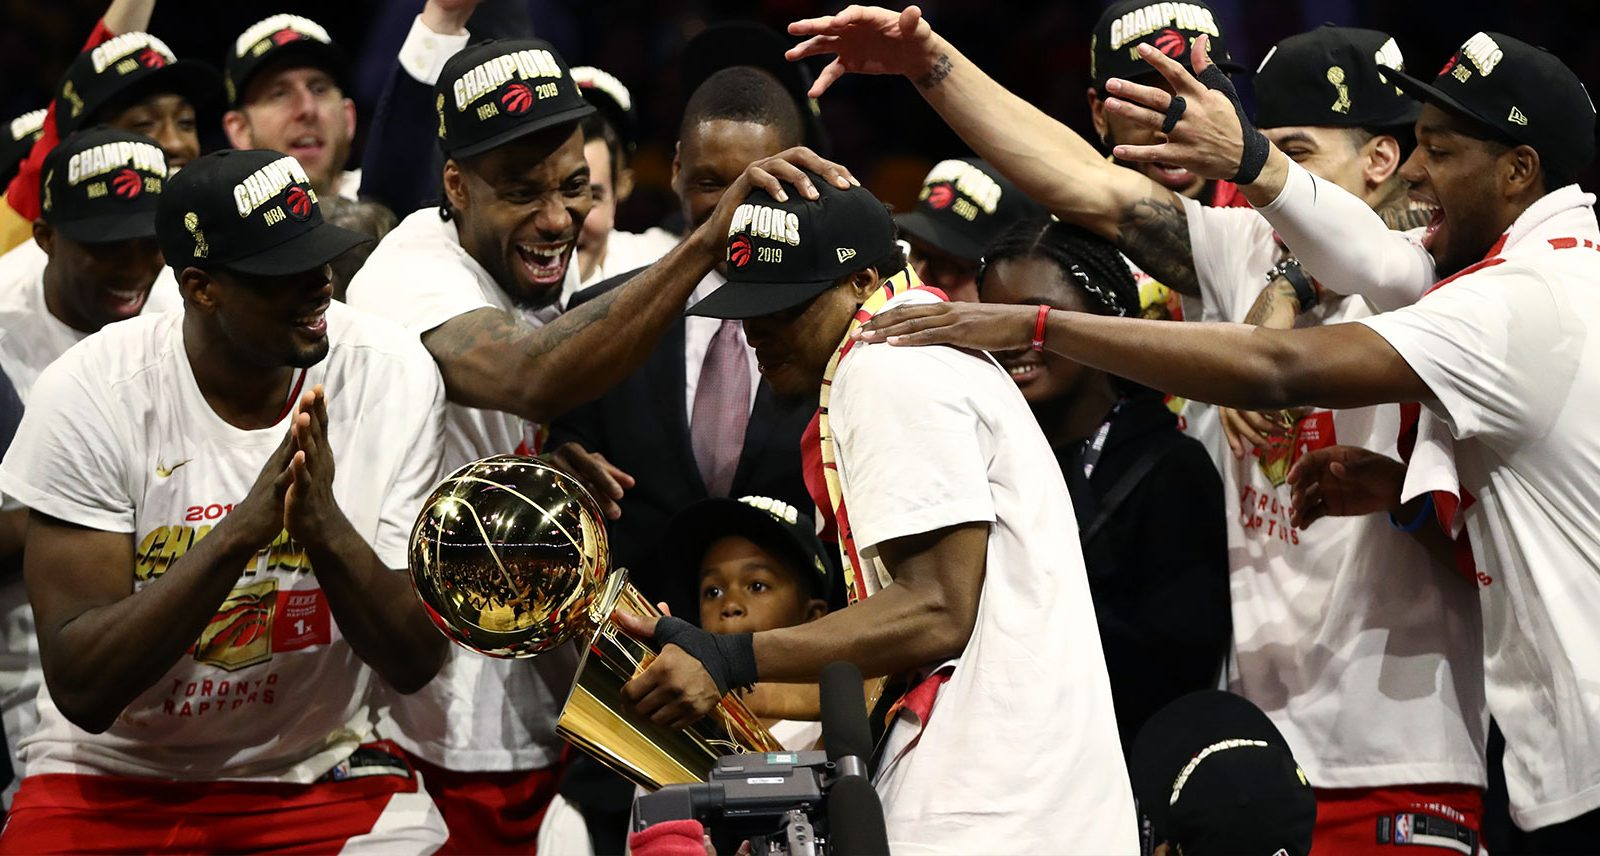 Let's Watch the Toronto Raptors Get Drunk Celebrating Their First NBA Title to Help This All Sink In